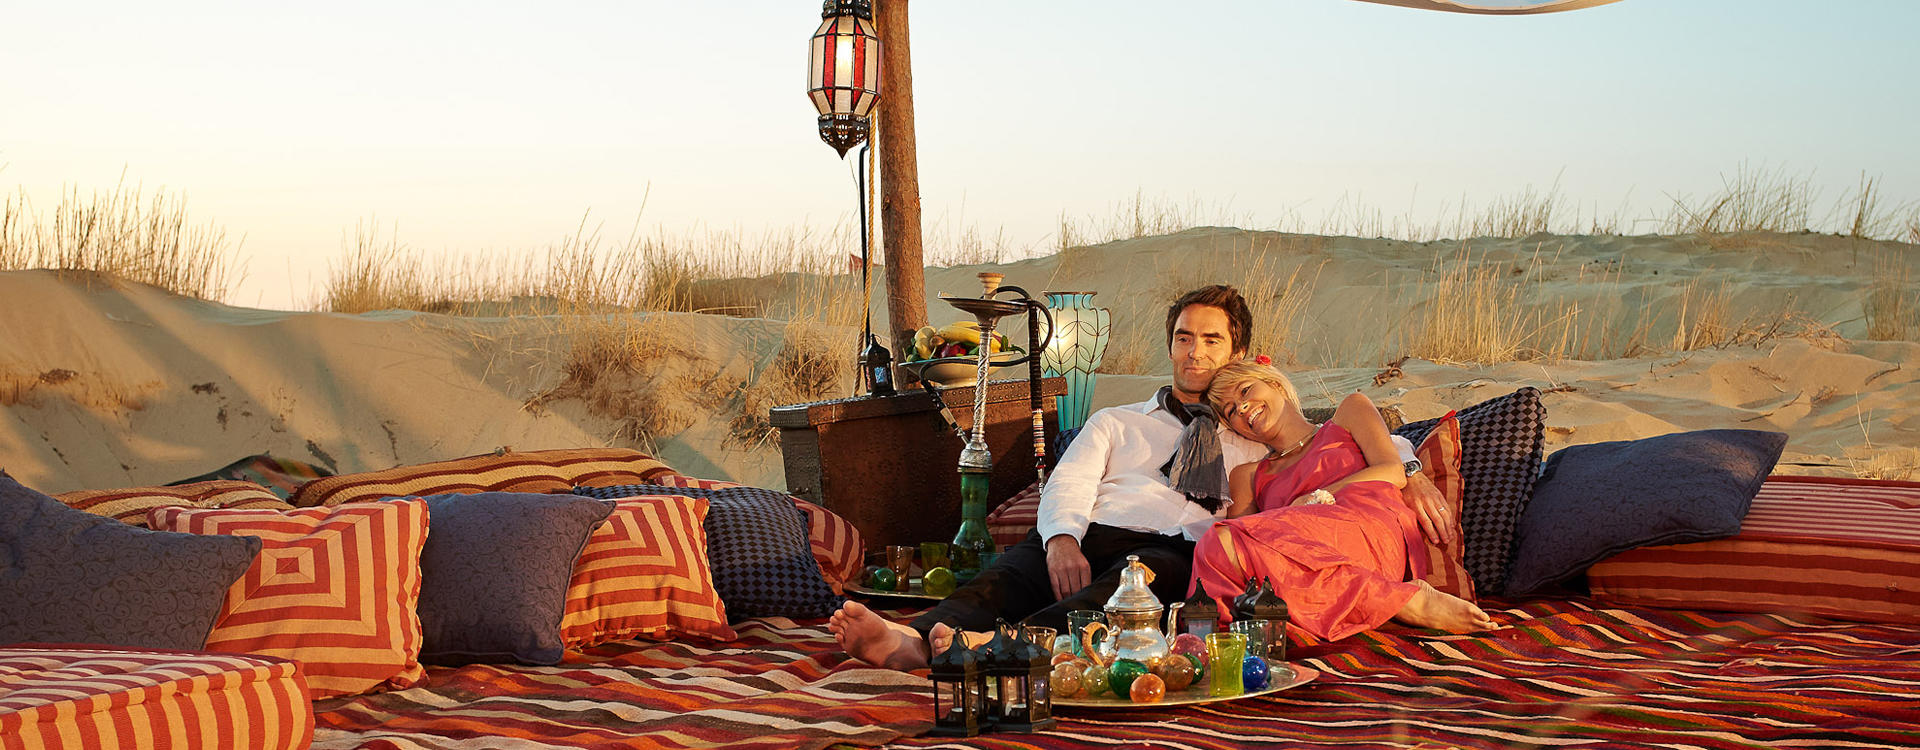 A Magical Private Dinner under a Bedouin Tent